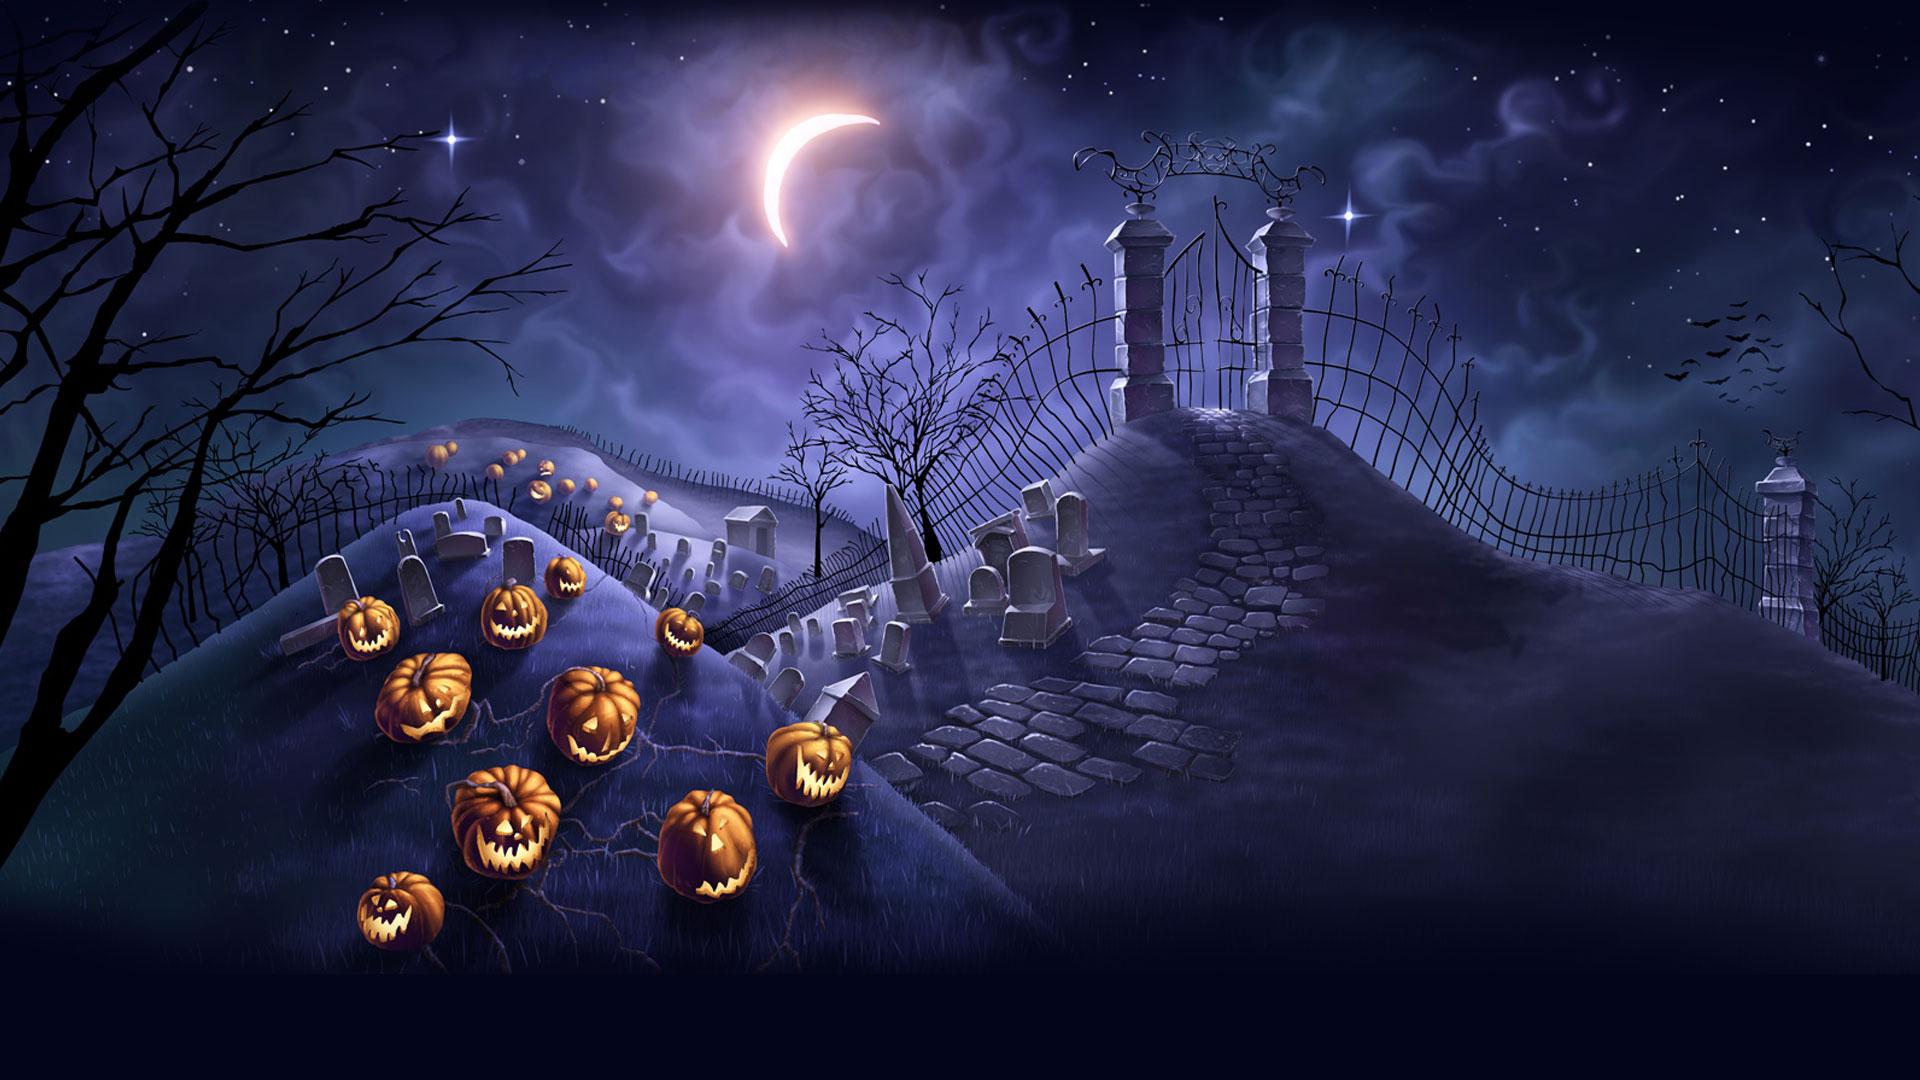 50 Scary Halloween 2019 Wallpapers Hd Backgrounds Halloween 2019 Wallpaper Hd 1920x1080 Wallpaper Teahub Io